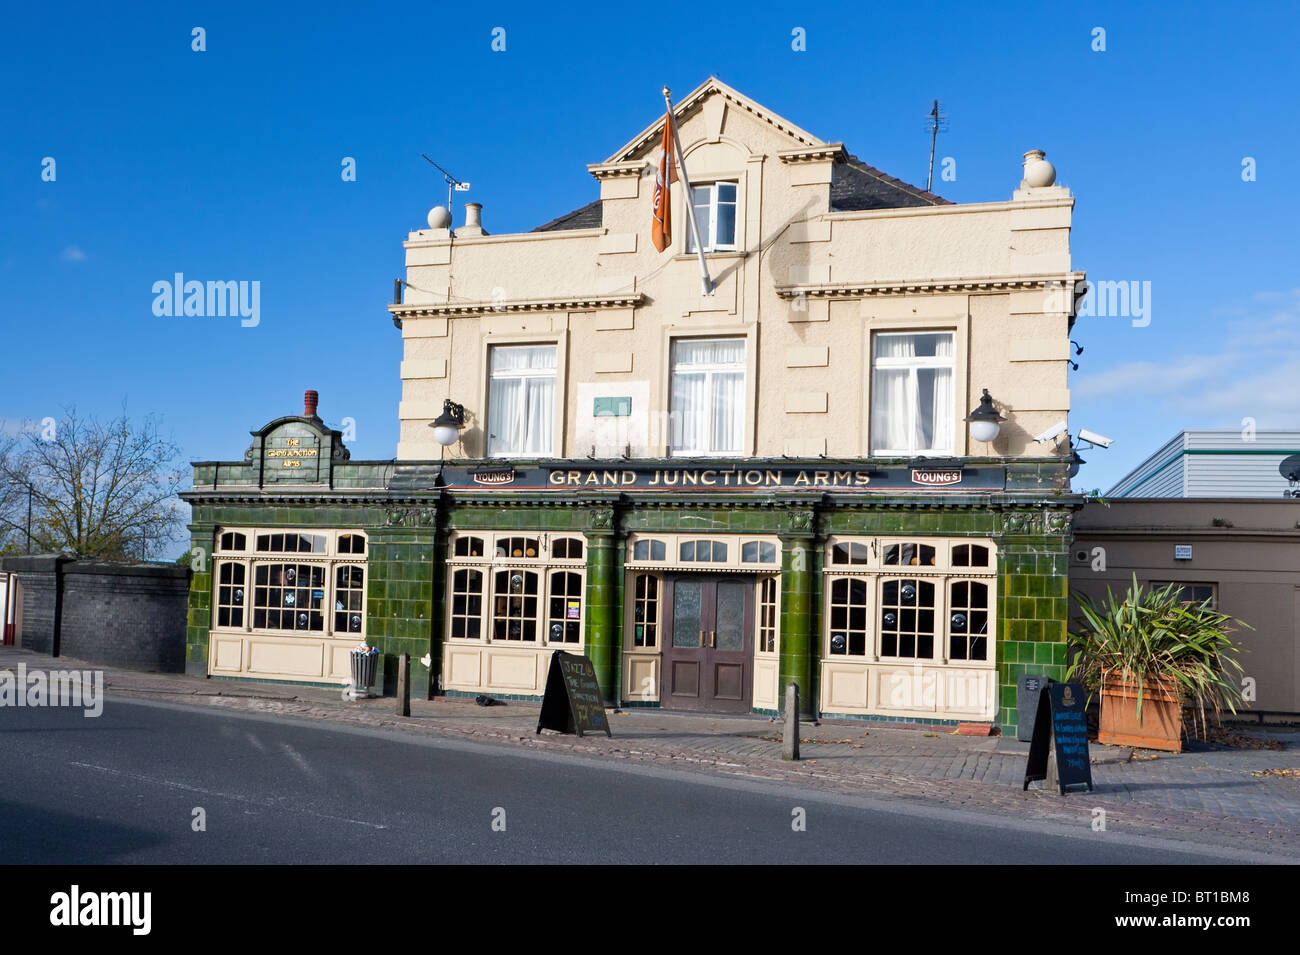 England London Harlesden 'Grand Junction Arms' public house on Acton Lane - Stock Image